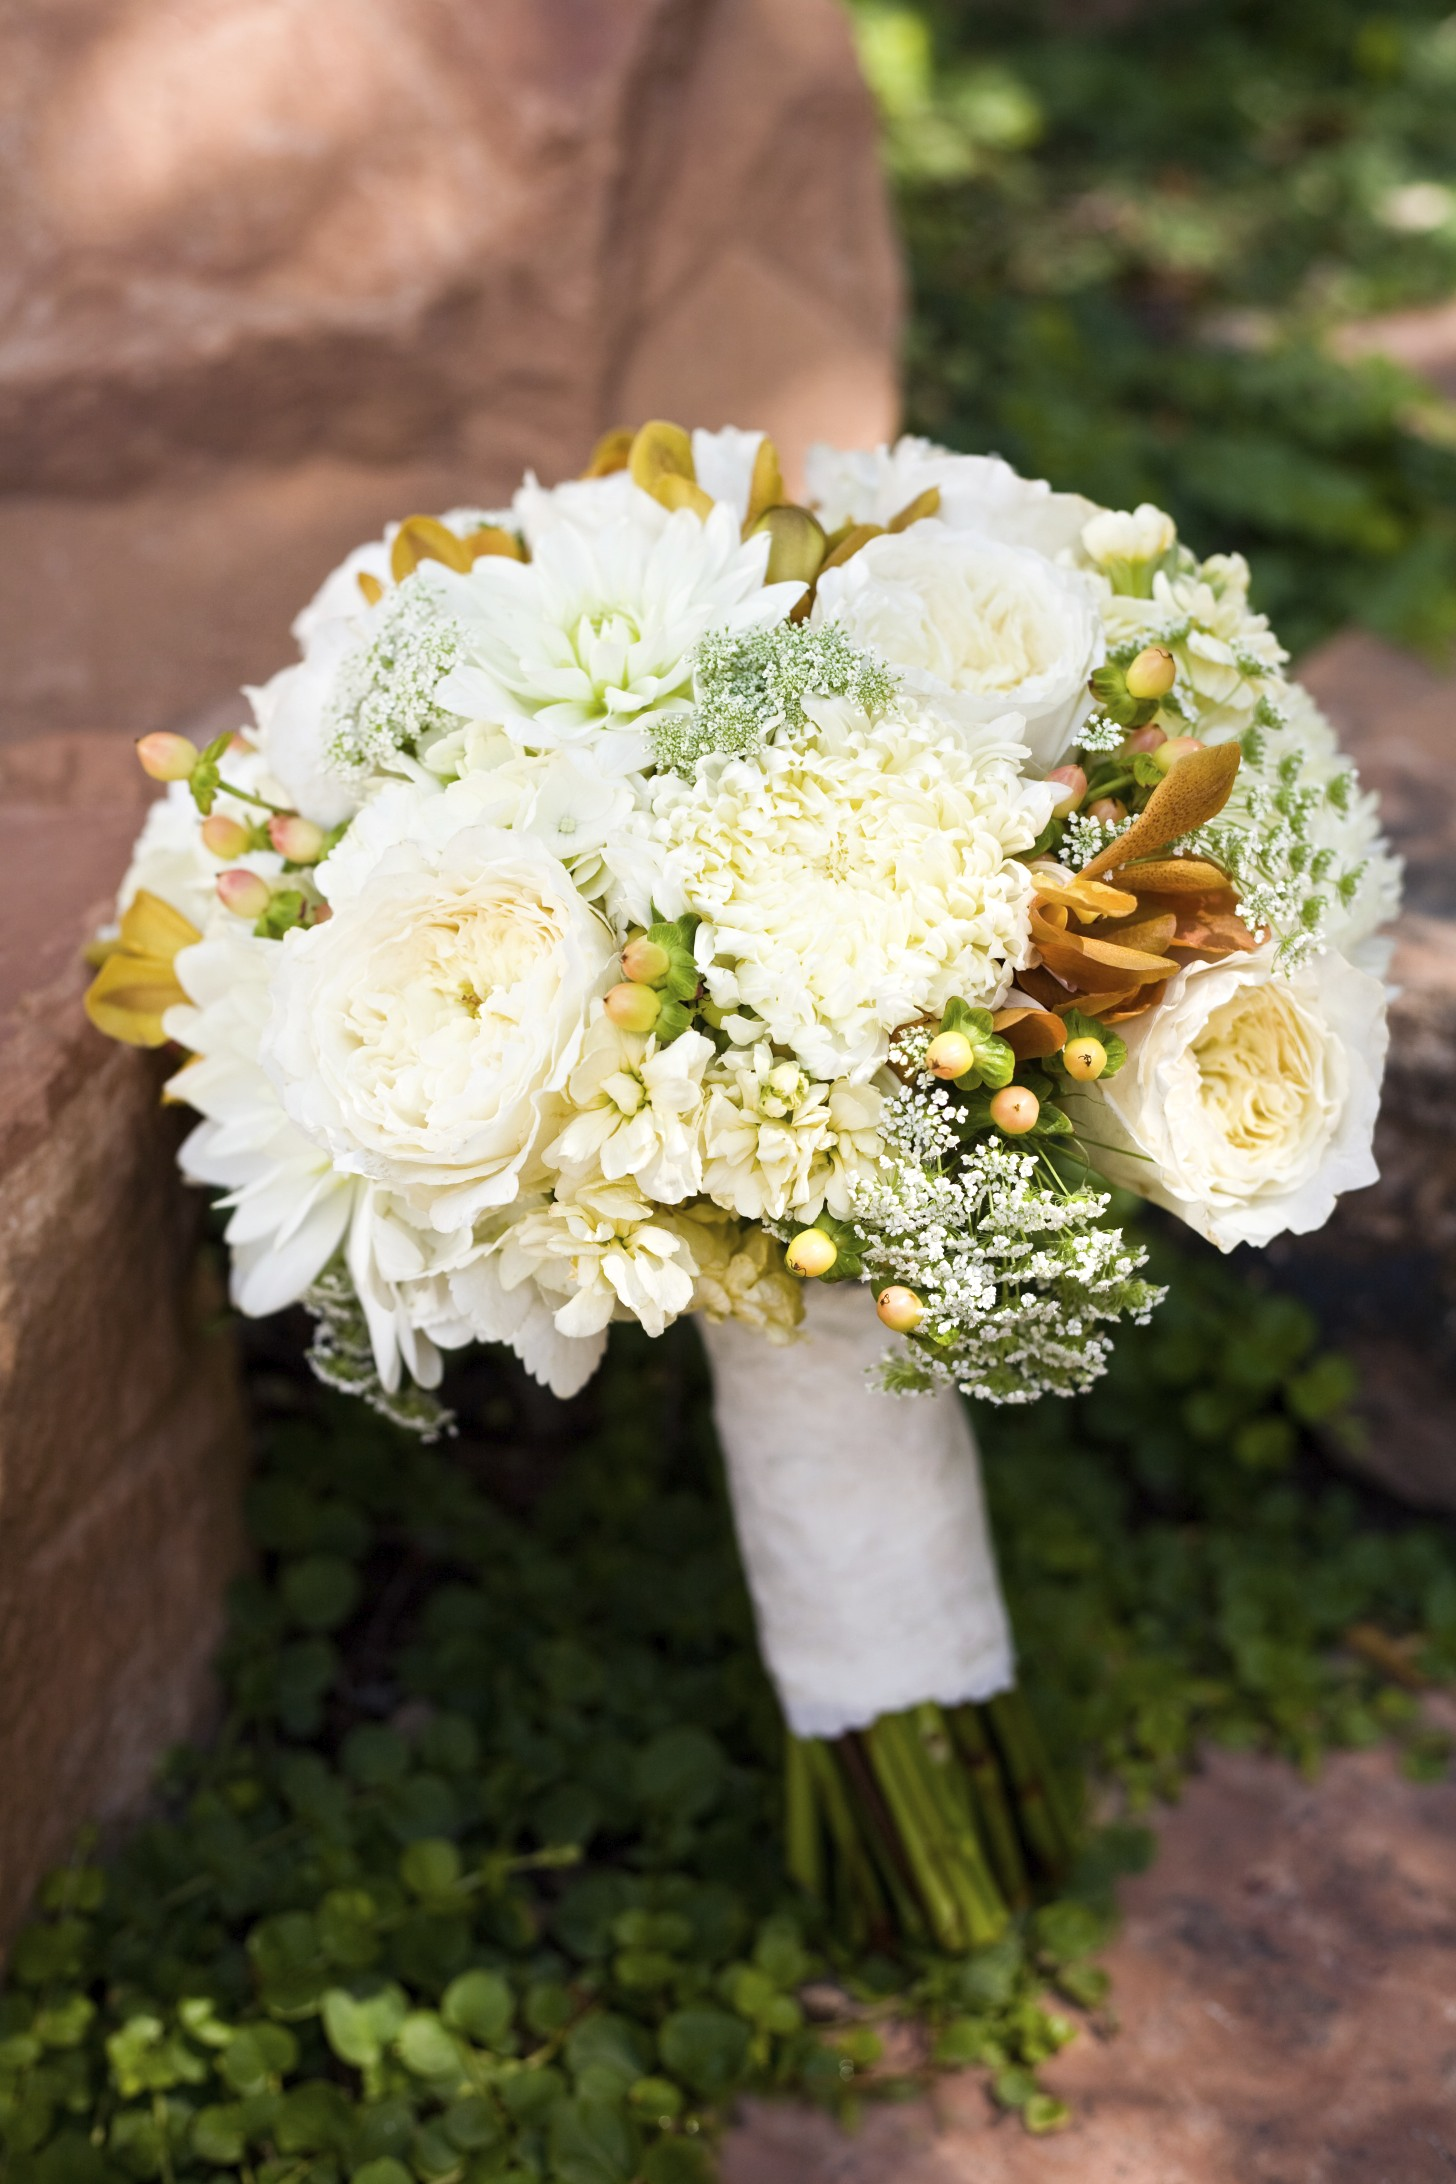 cream hydrangea garden rose dahlia wedding bouquet wedding flowers utah calie rose